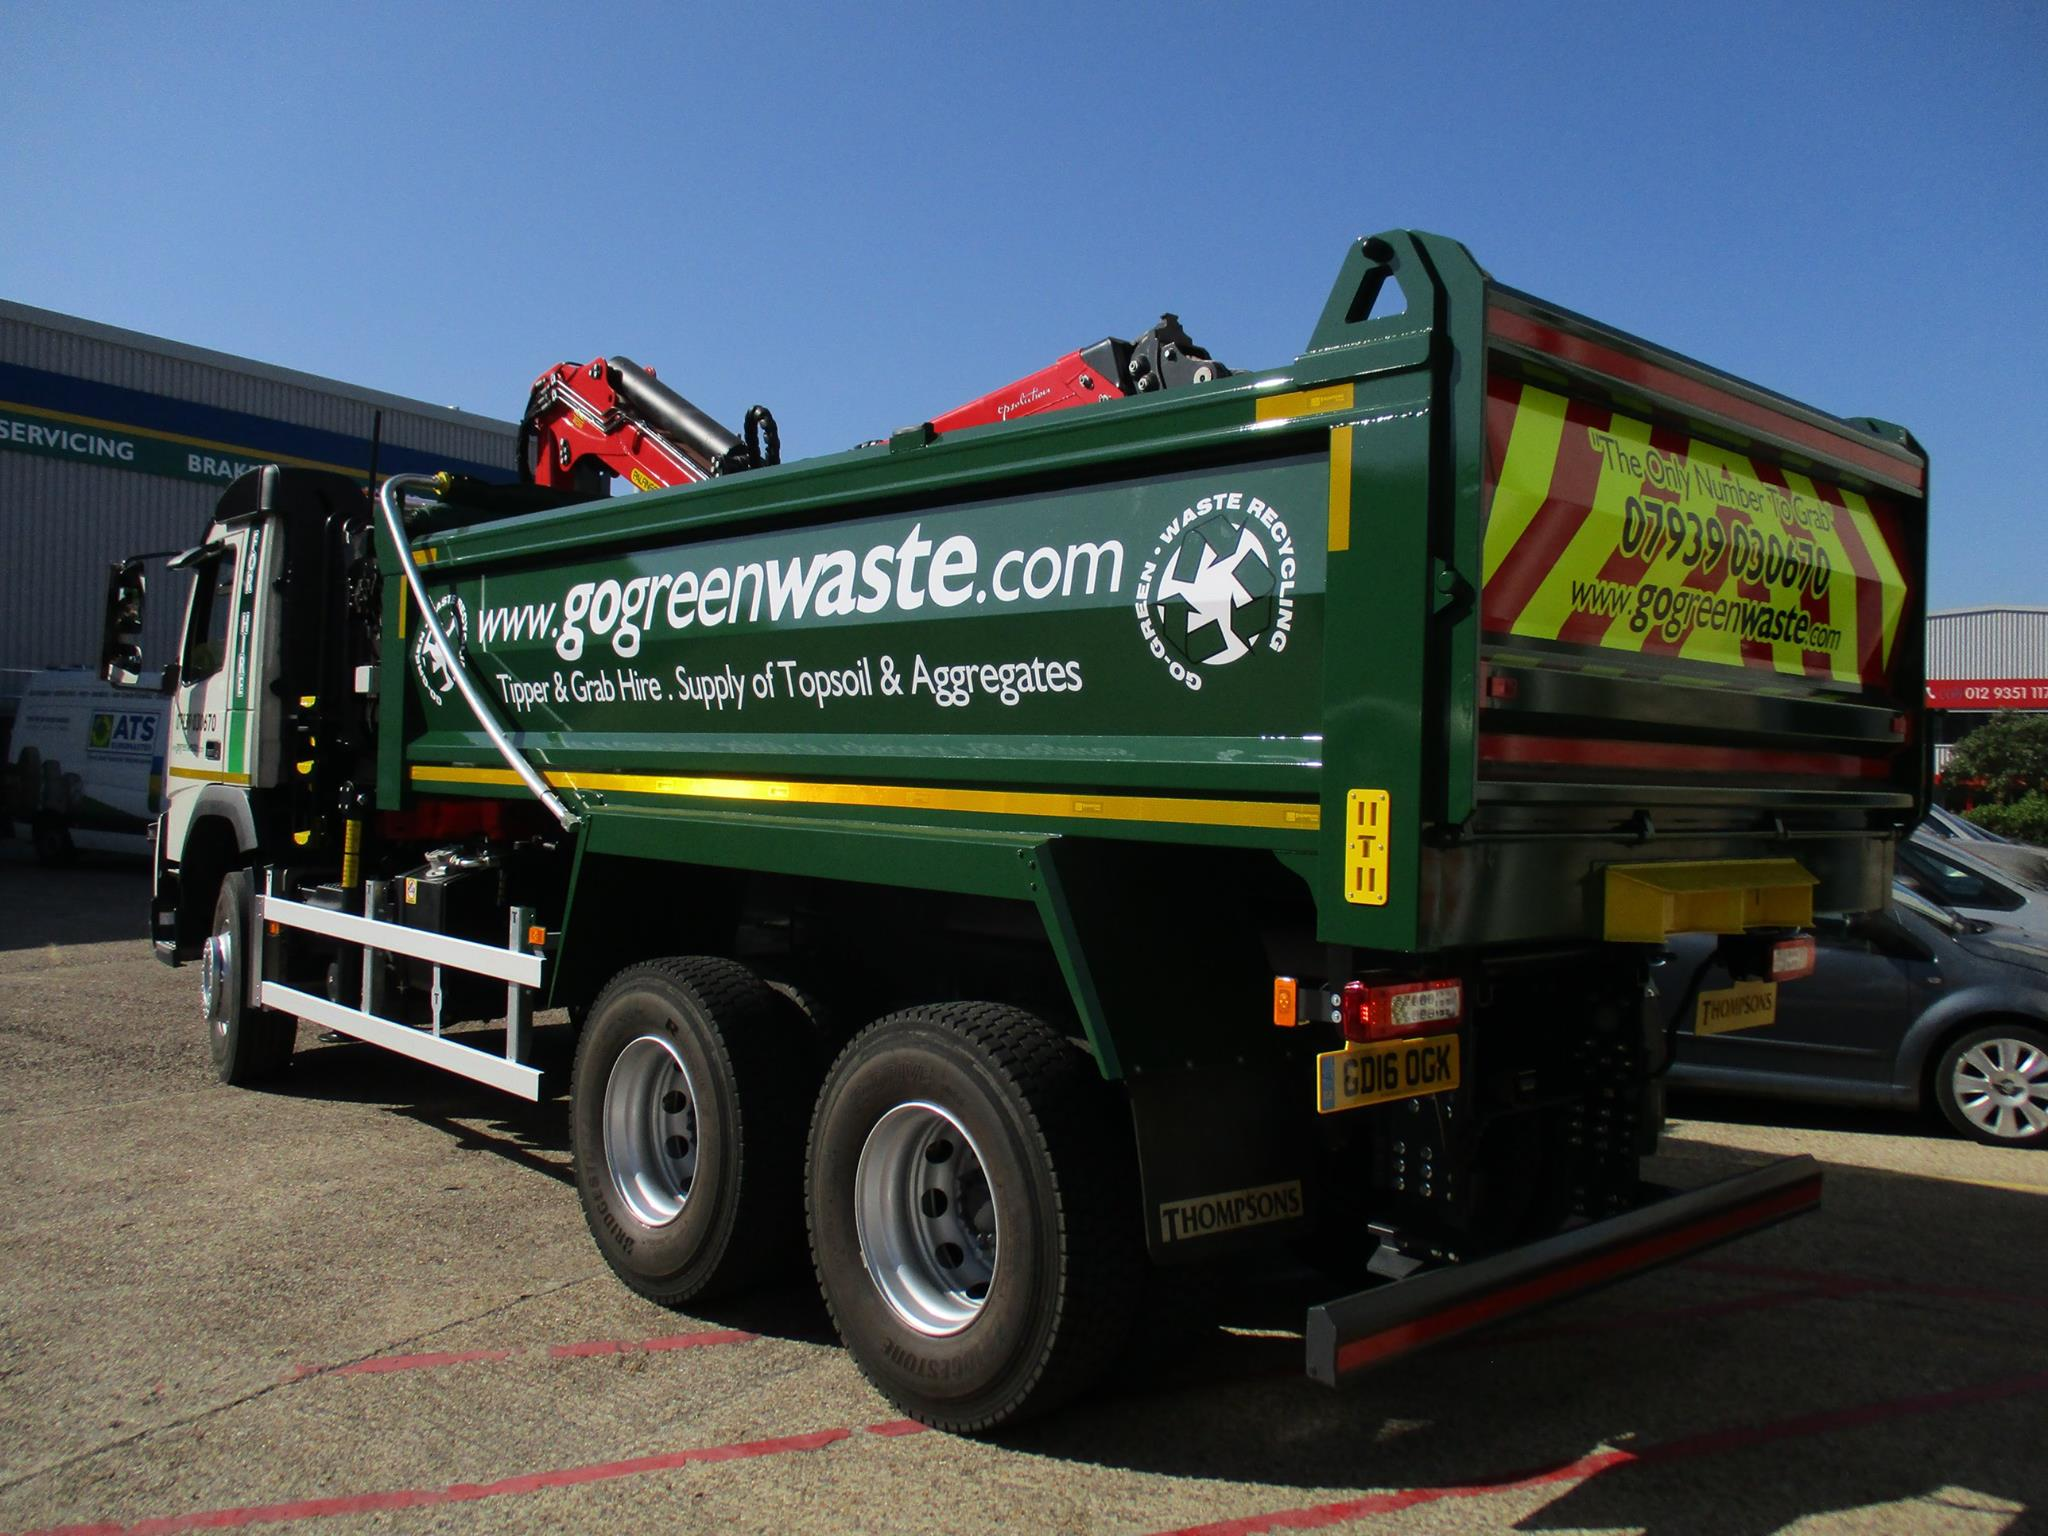 GO GREEN WASTE RECYCLING